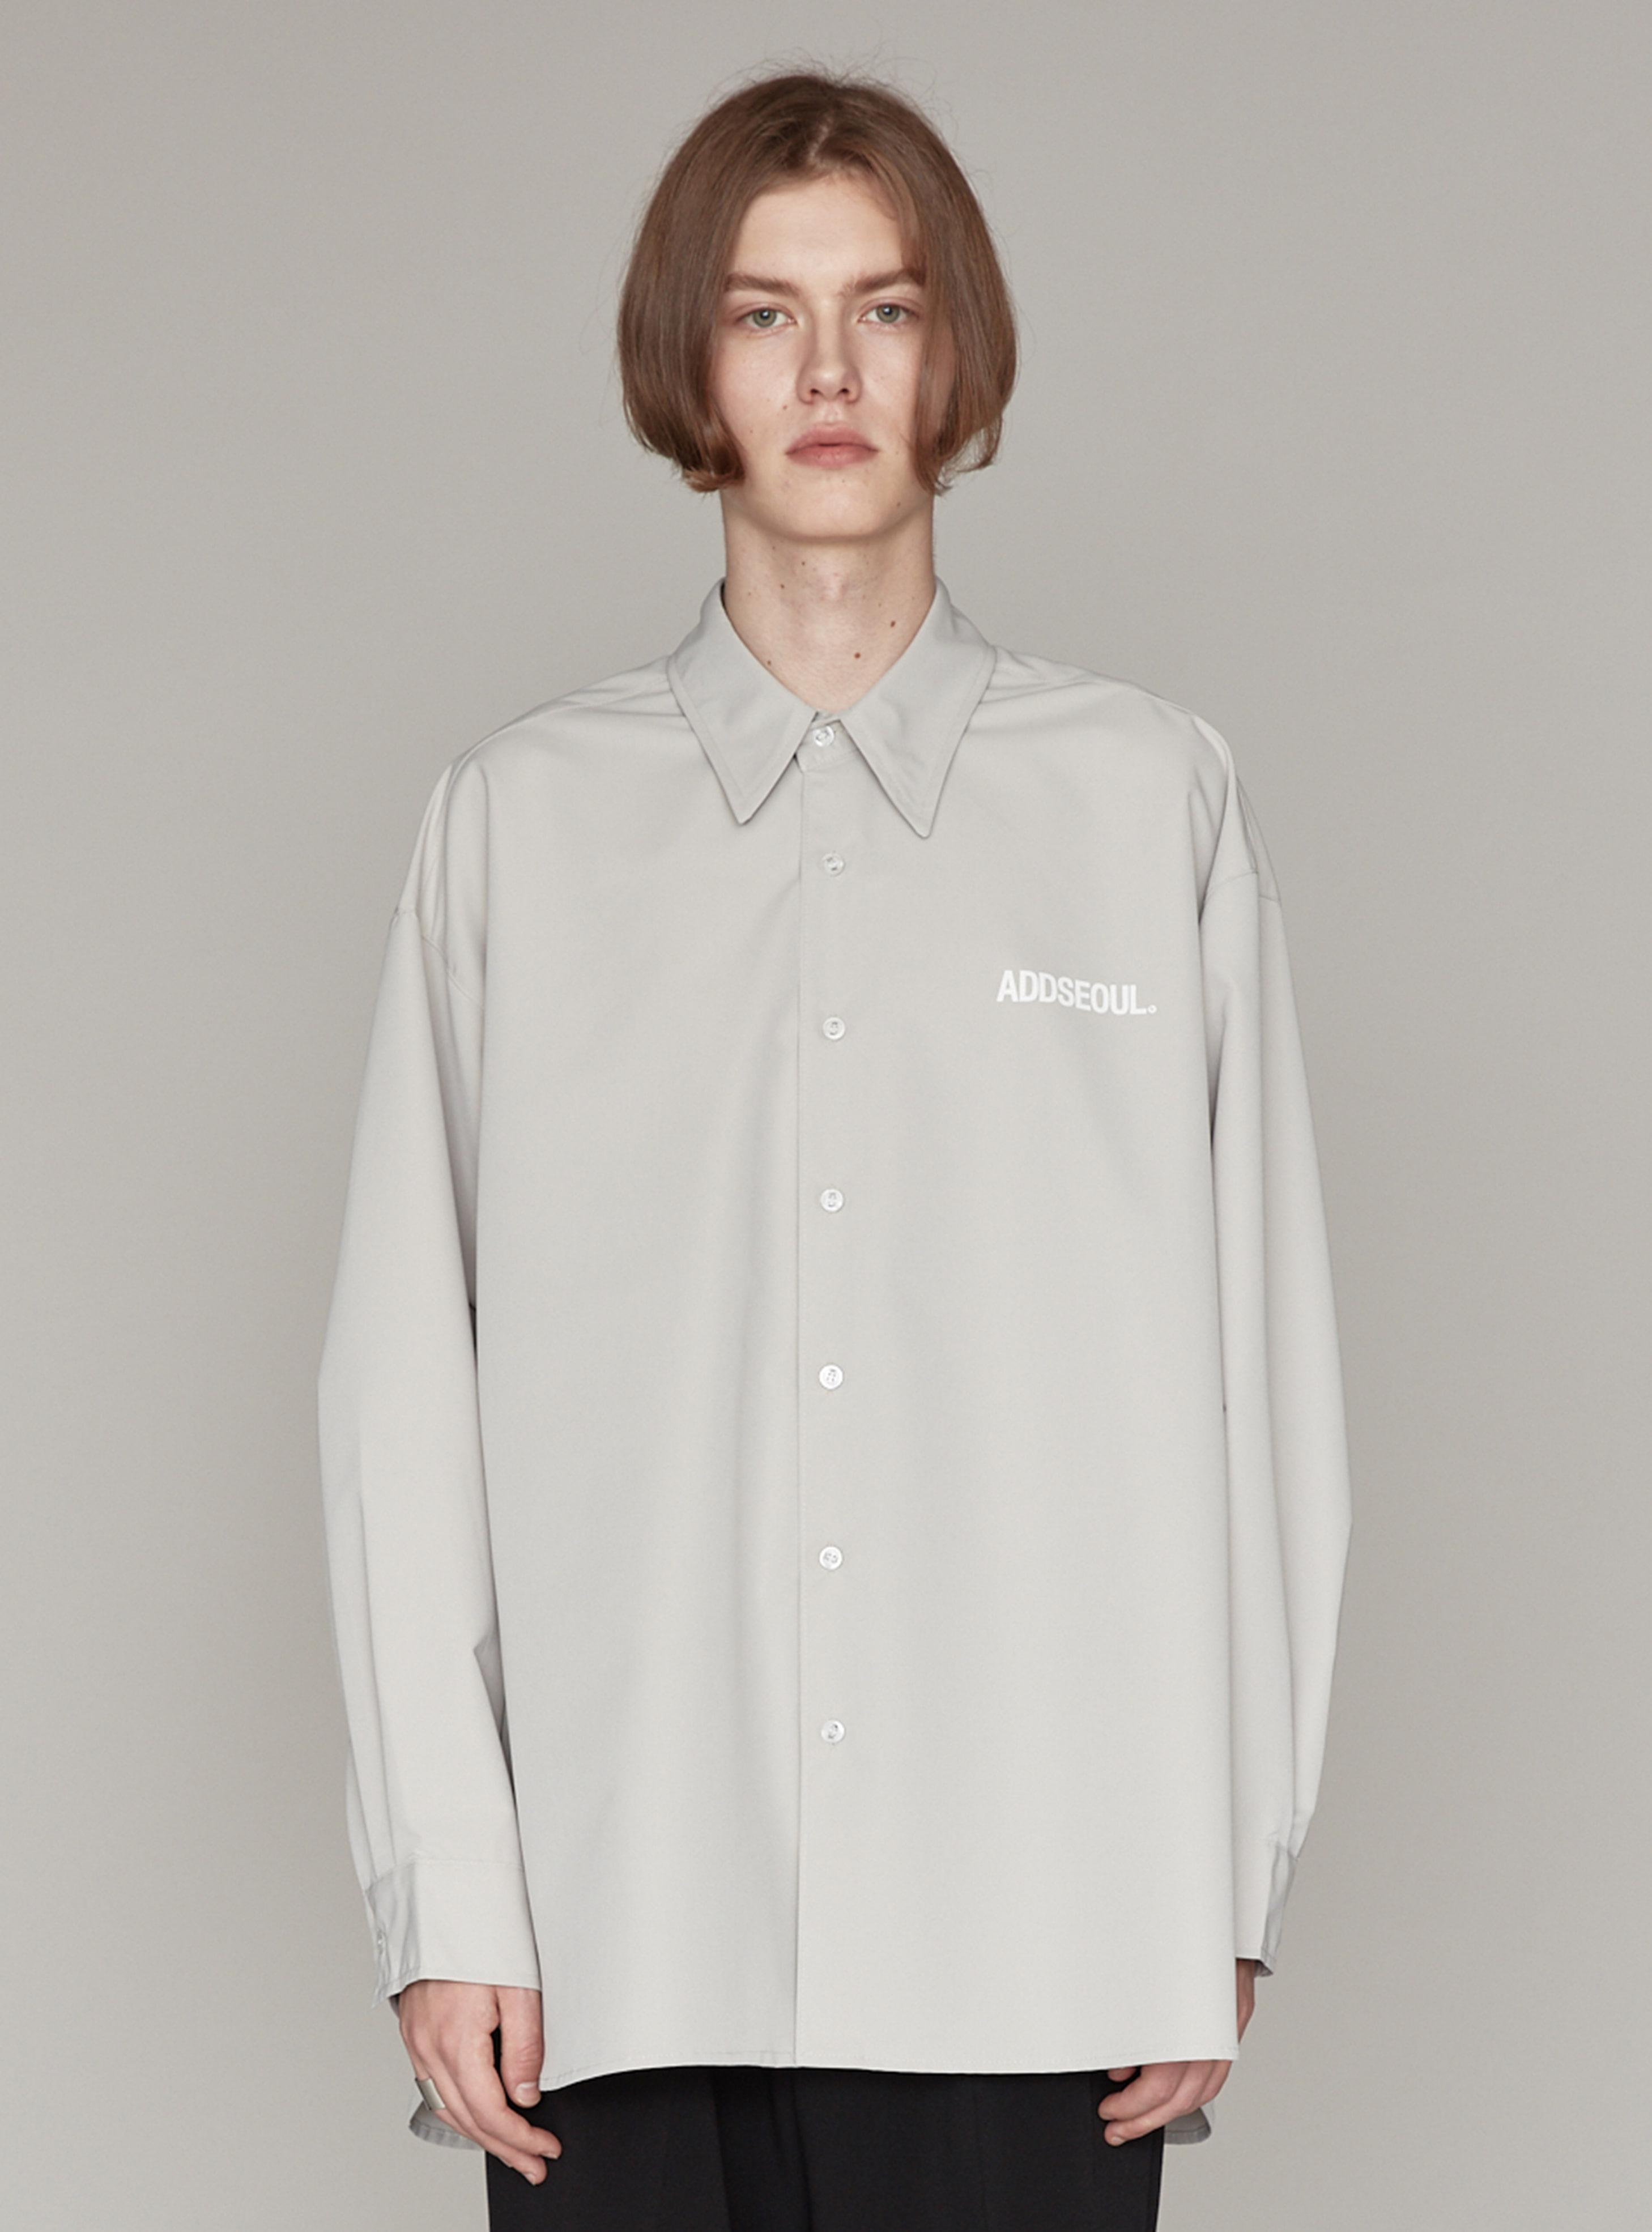 LOGO AVANTGARDE SHIRT GREY